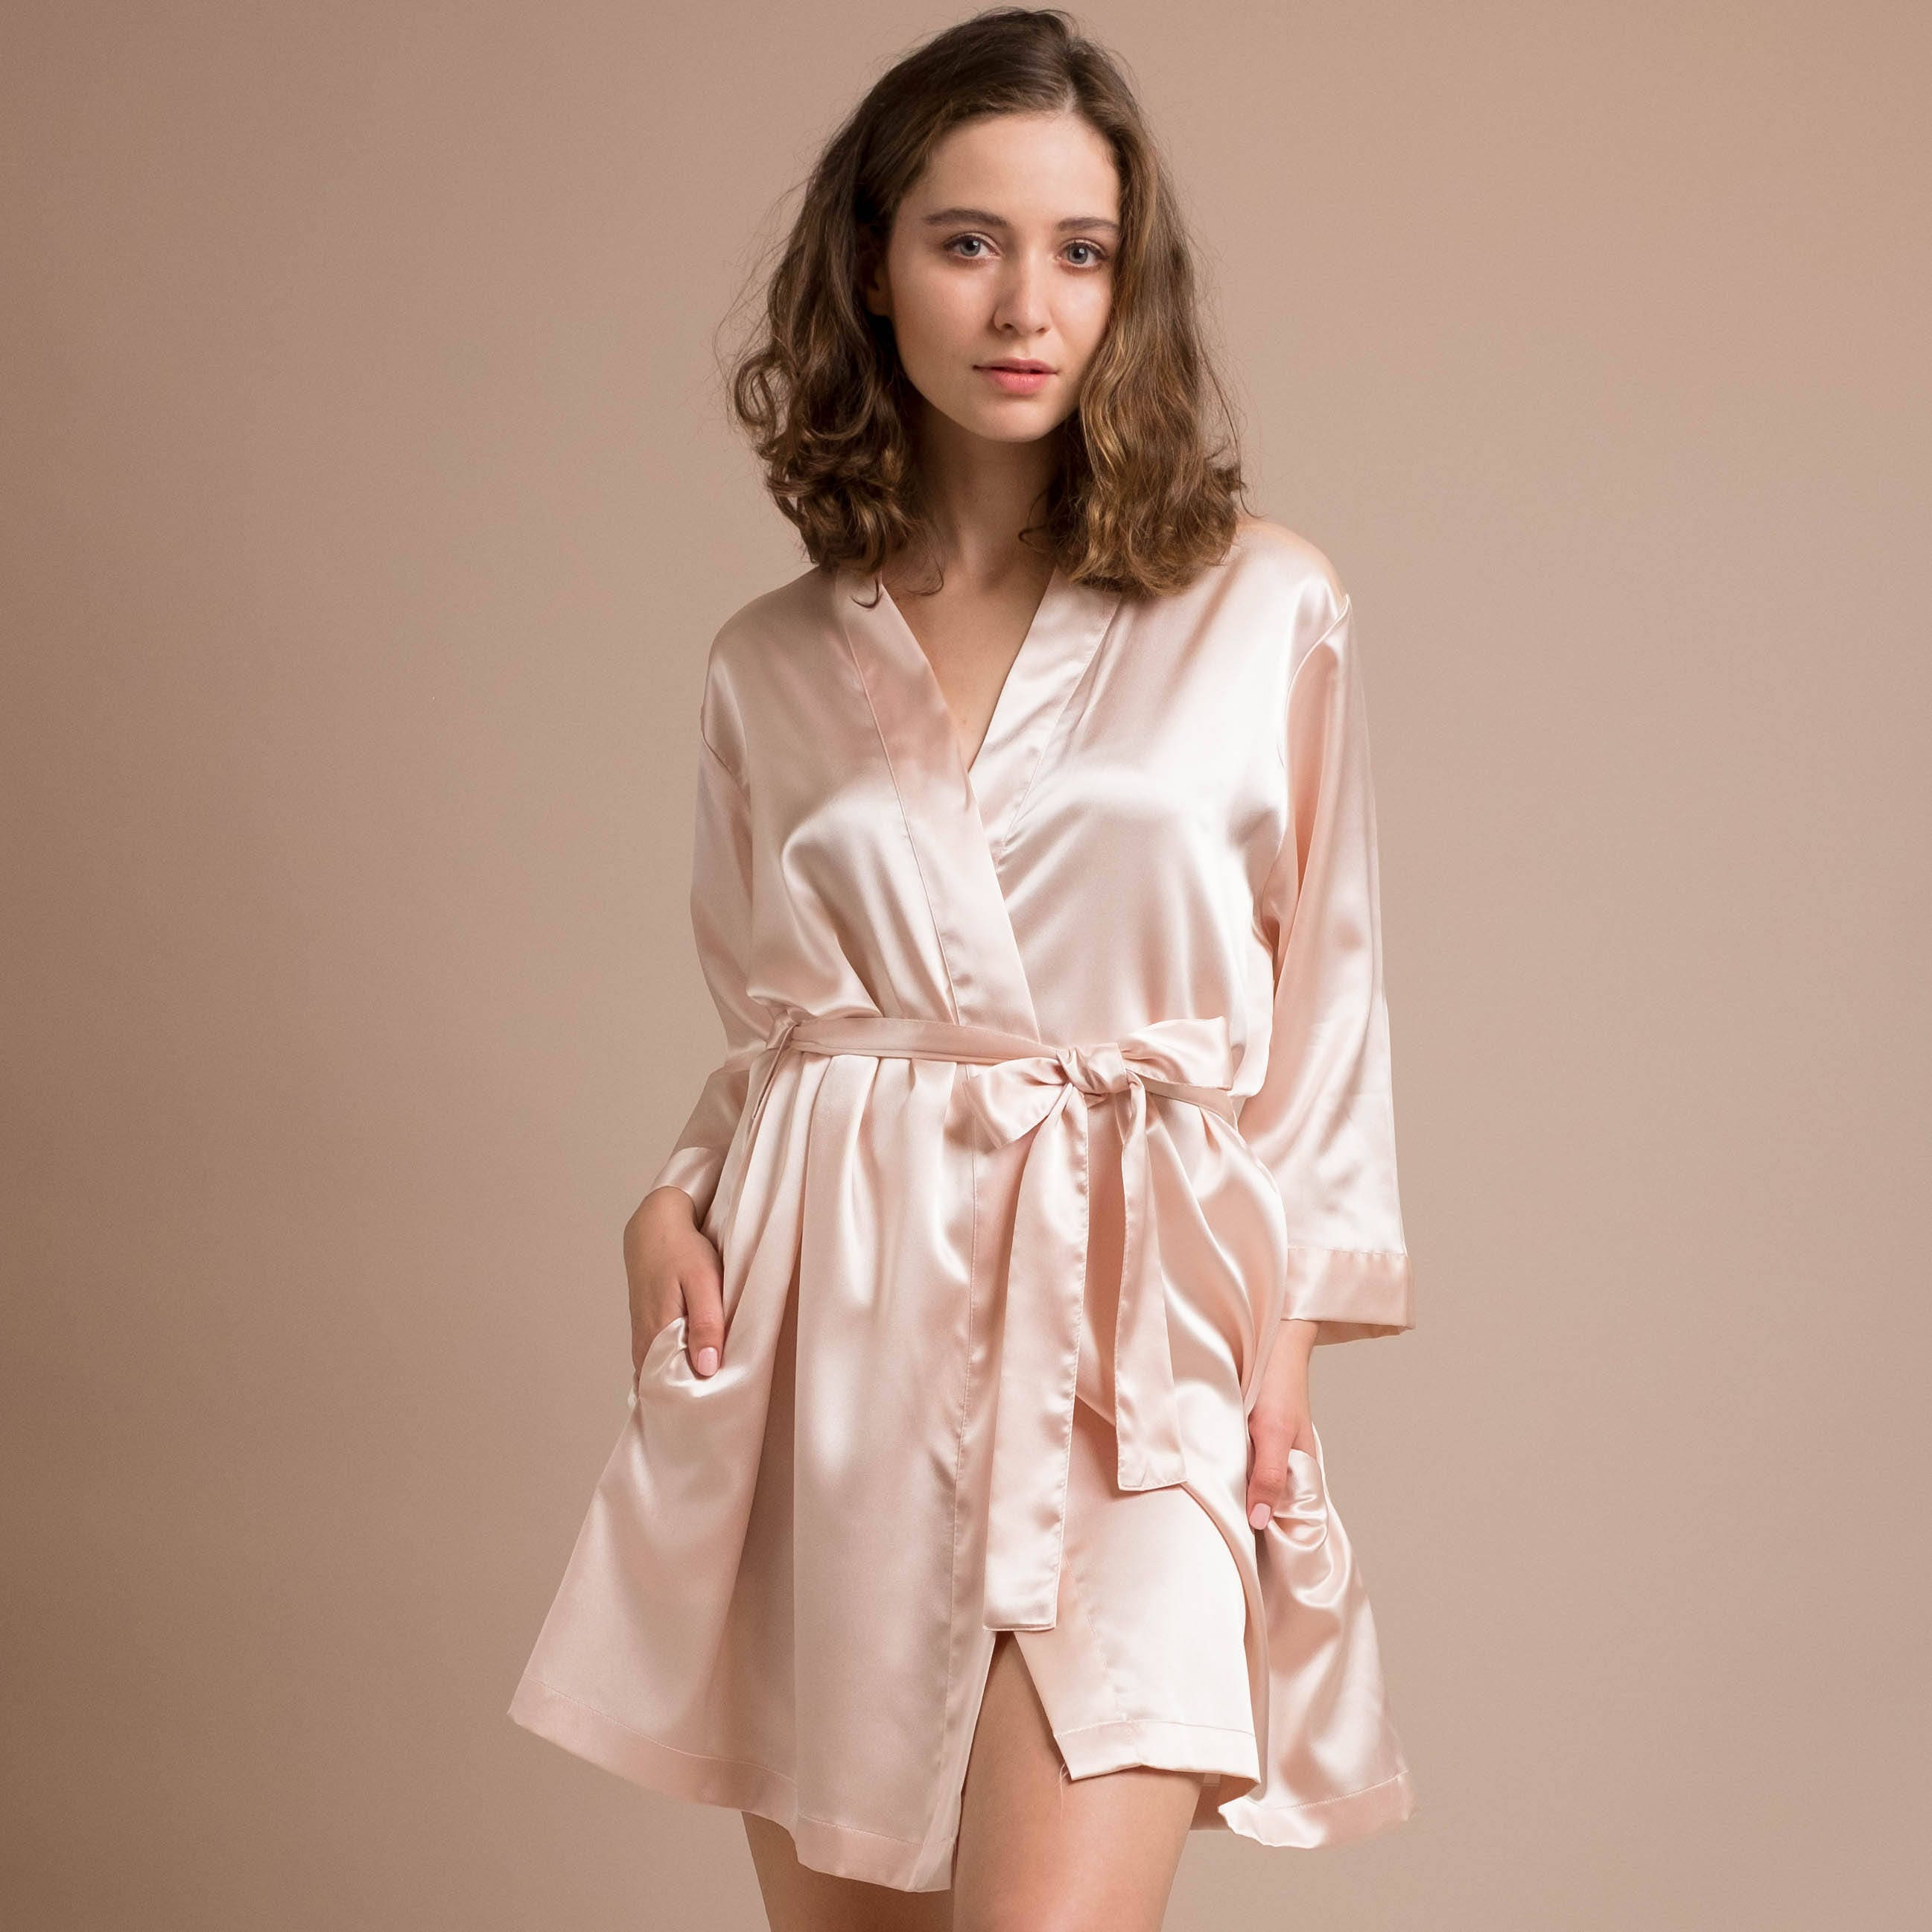 Dressing Gowns And Robes: Bridesmaid Robes Bridal Dressing Gown Short Satin Robes